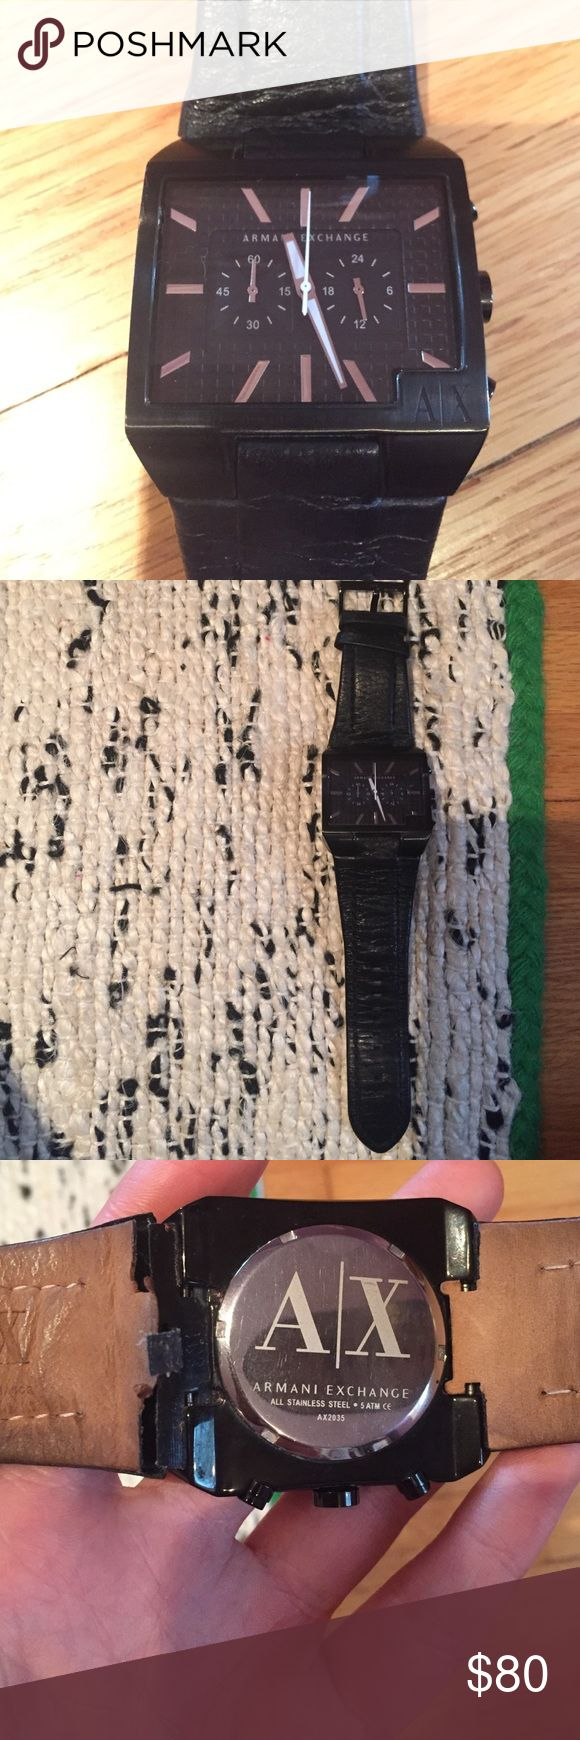 Armani Exchange Mens Watch Black watch. Leather. Stainless steel. Battery replaced recently. See pic 3 leather back a bit broken also some scratches on the glass. Good used condition. Works great. 100% original. No box. A/X Armani Exchange Accessories Watches